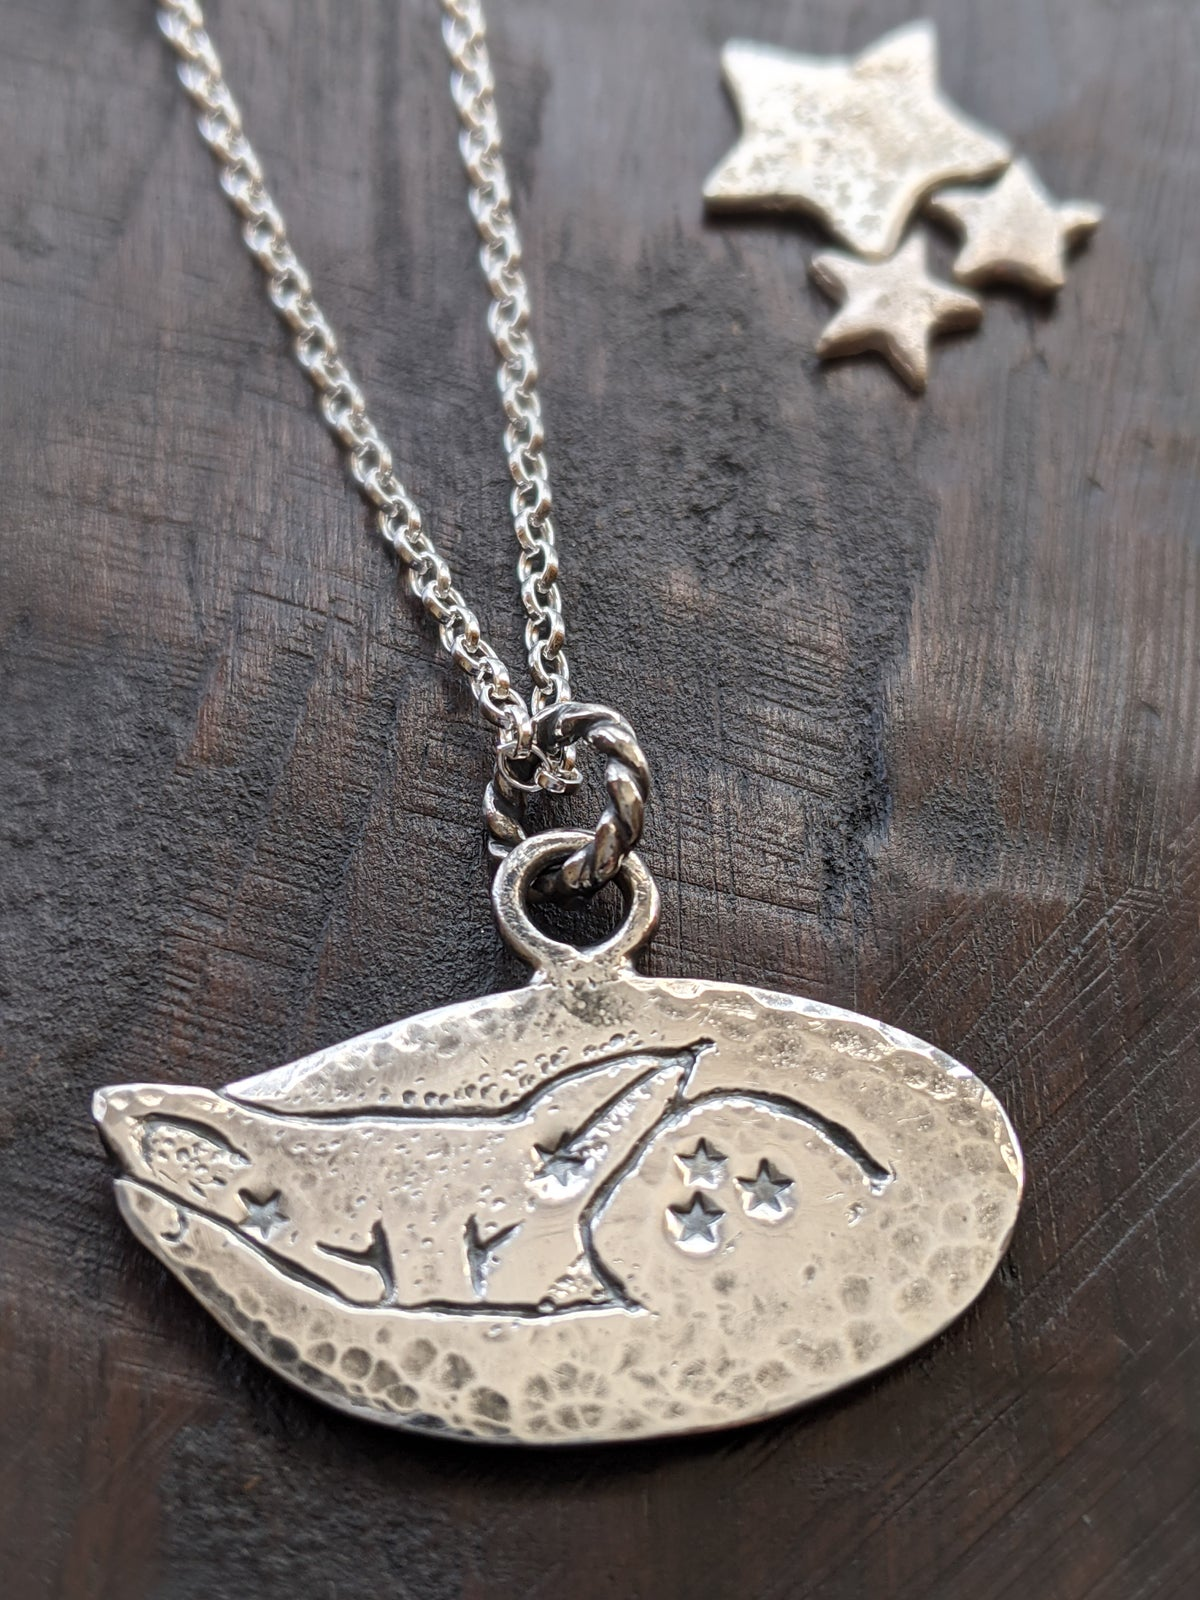 Dreaming Fox textured recycled silver pendant